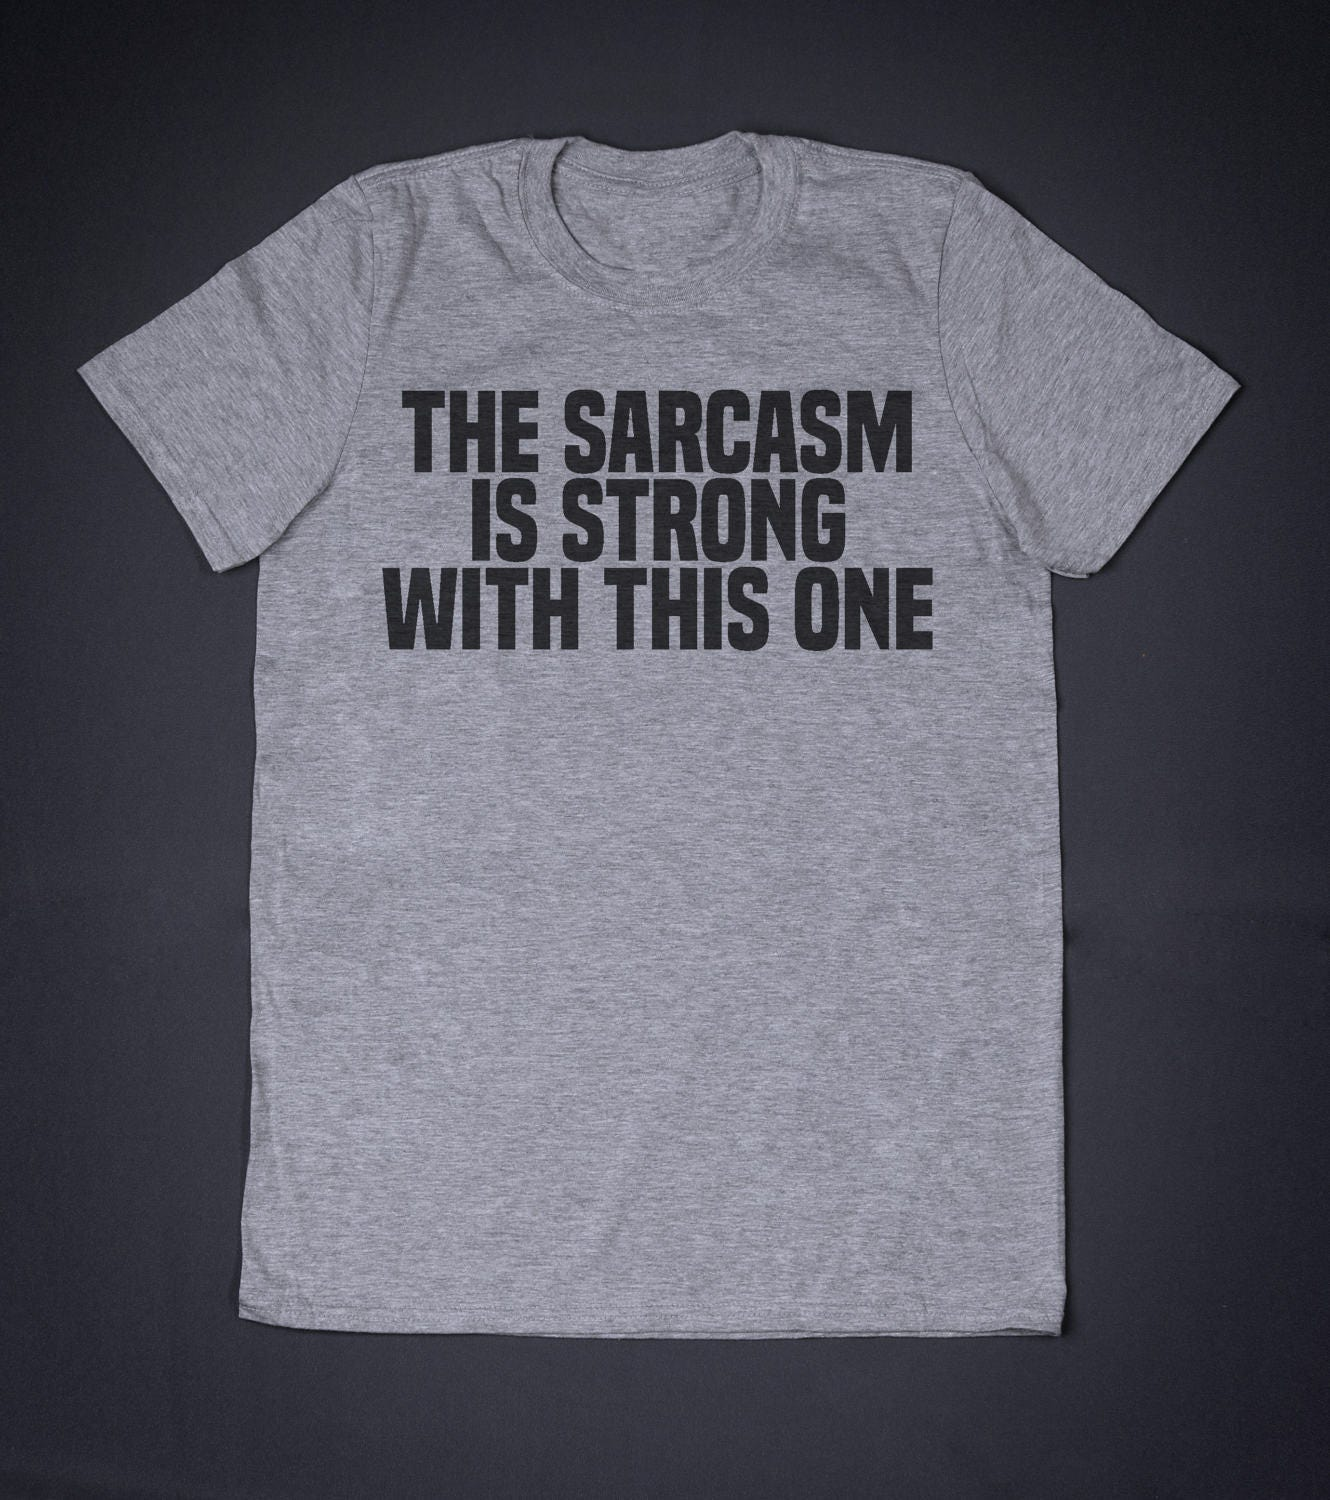 d1078def The Sarcasm Is Strong With This One Funny Slogan T-Shirt Sassy   Etsy